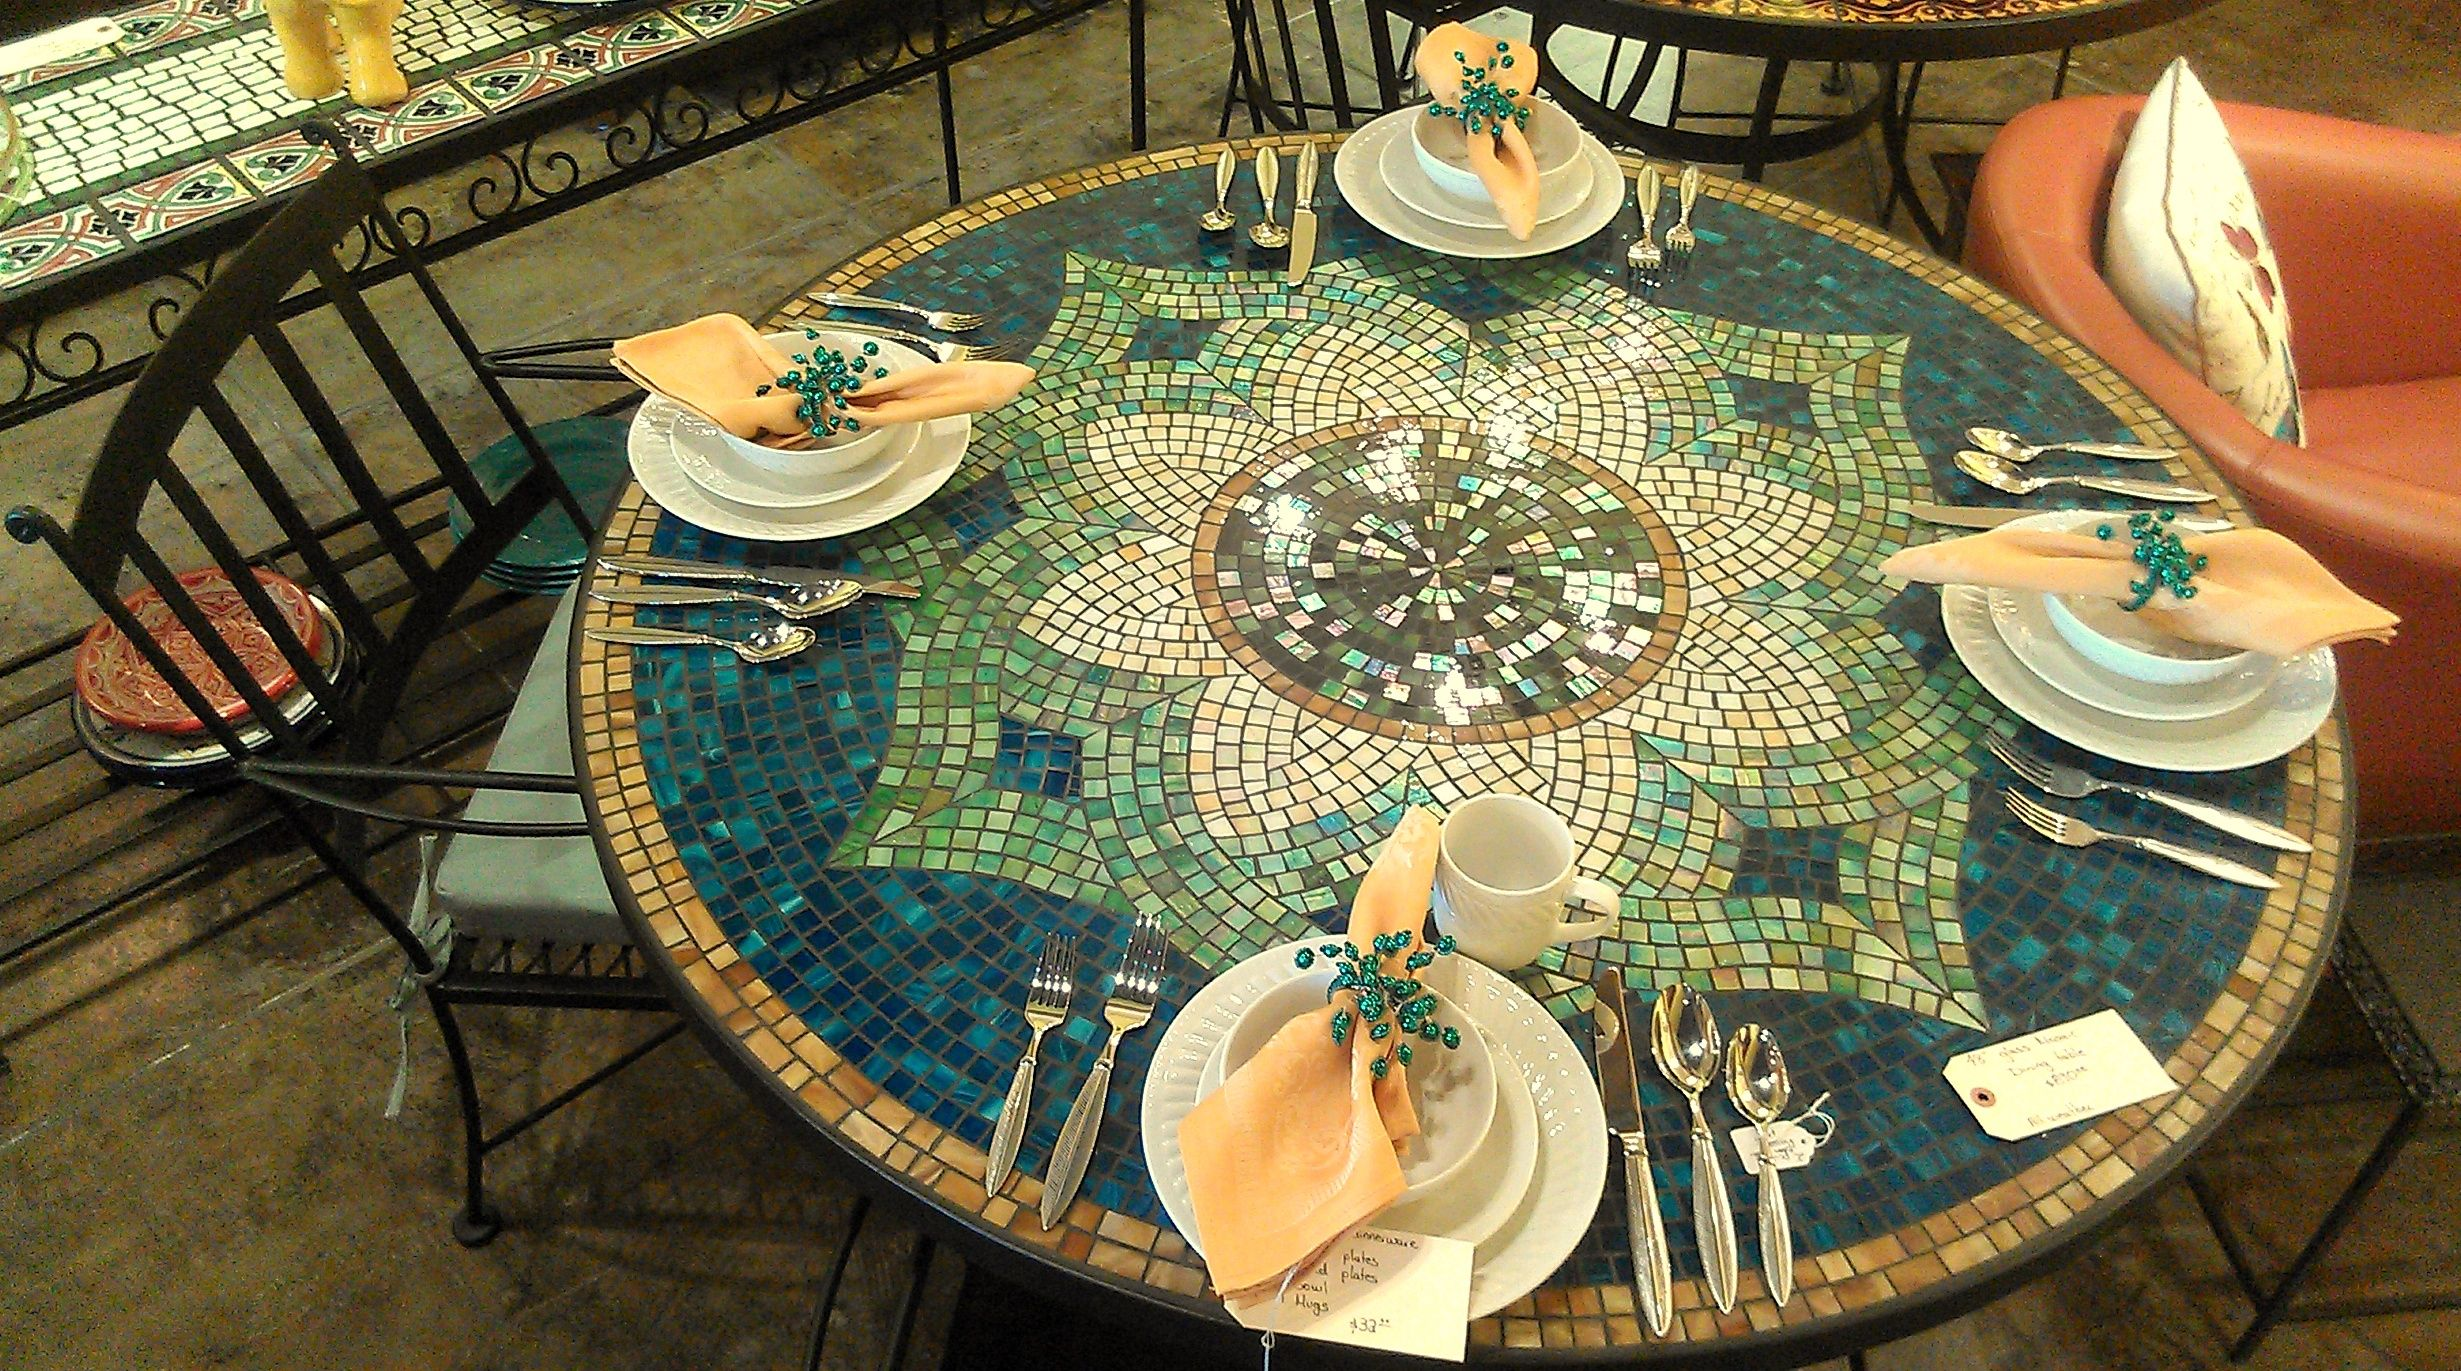 Mosaic Dining Table Fancy For Inspirational Home Decorating With